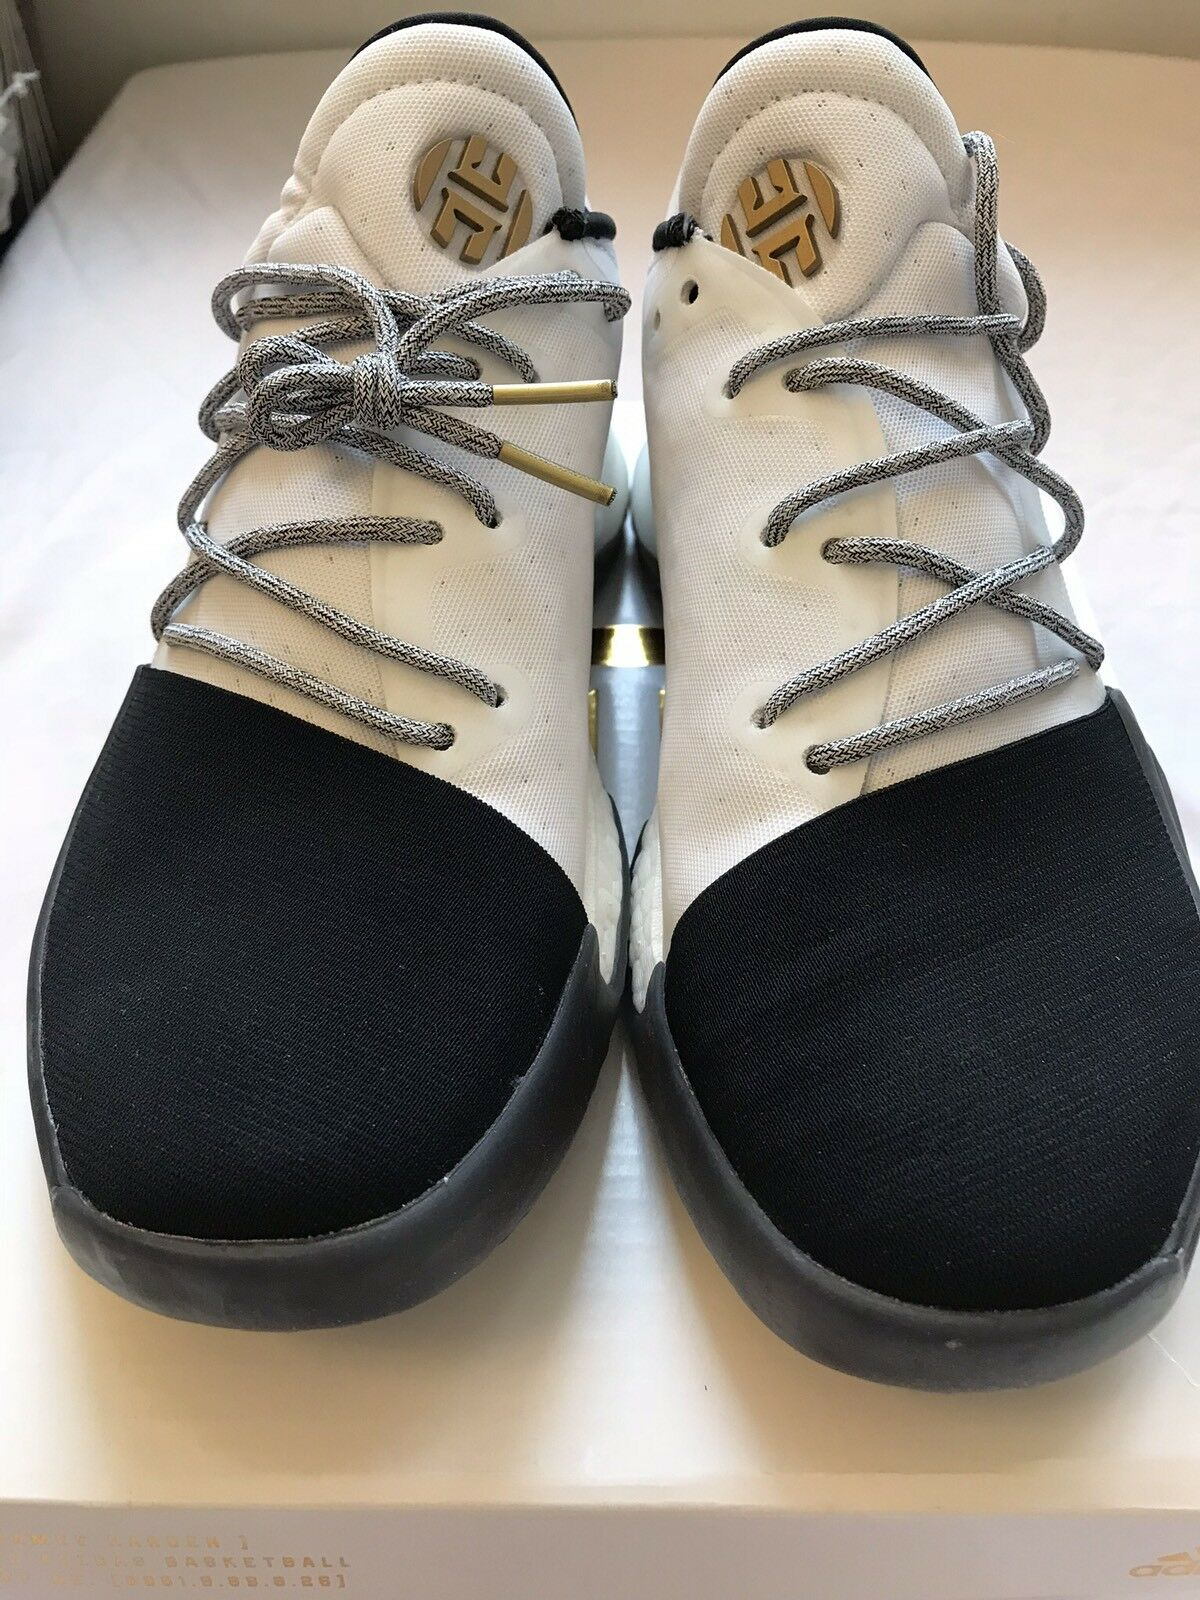 4732822b76d3 Adidas Adidas Adidas James Harden Vol 1 White Black gold BY3481 Basketball  shoes Size 5 a00db5